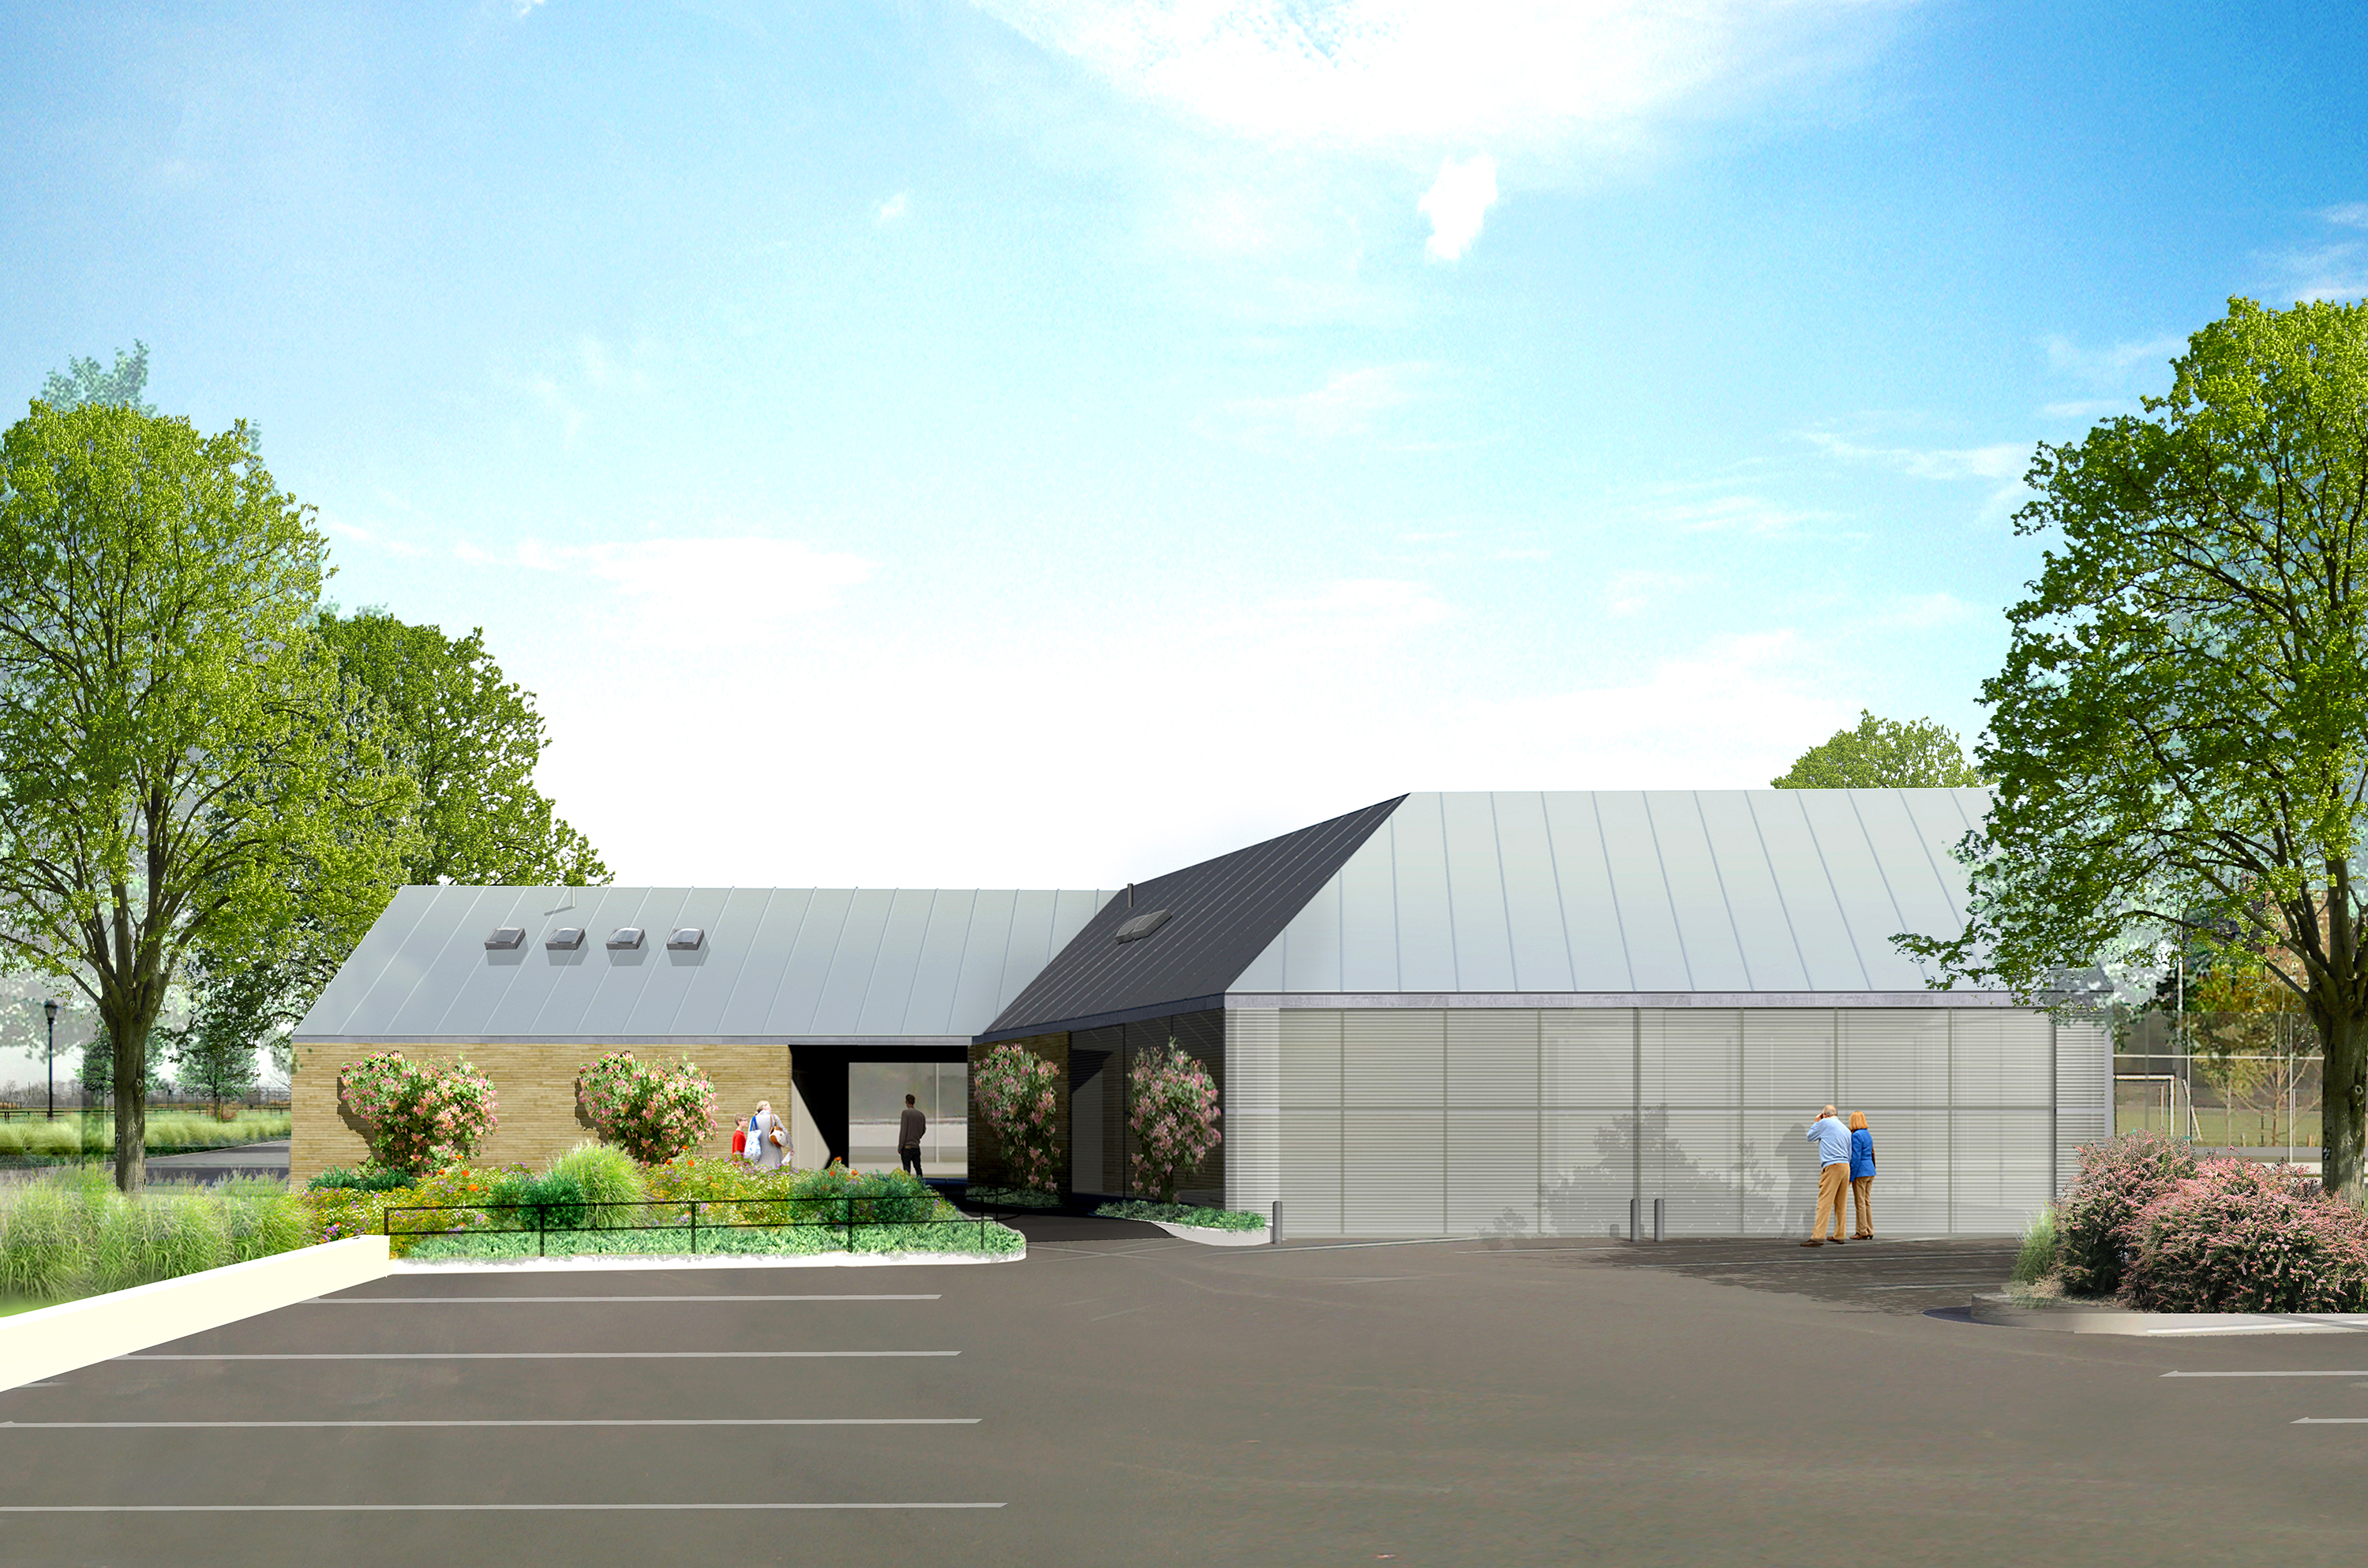 Design of Calvert Vaux Park Comfort Station and Maintenance Facility Construction